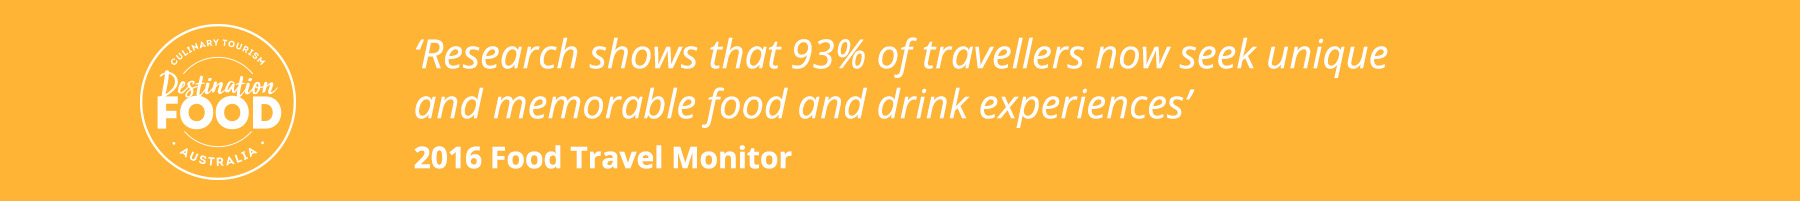 Research shows that 93% of travellers now seek unique and memorable food and drink experiences